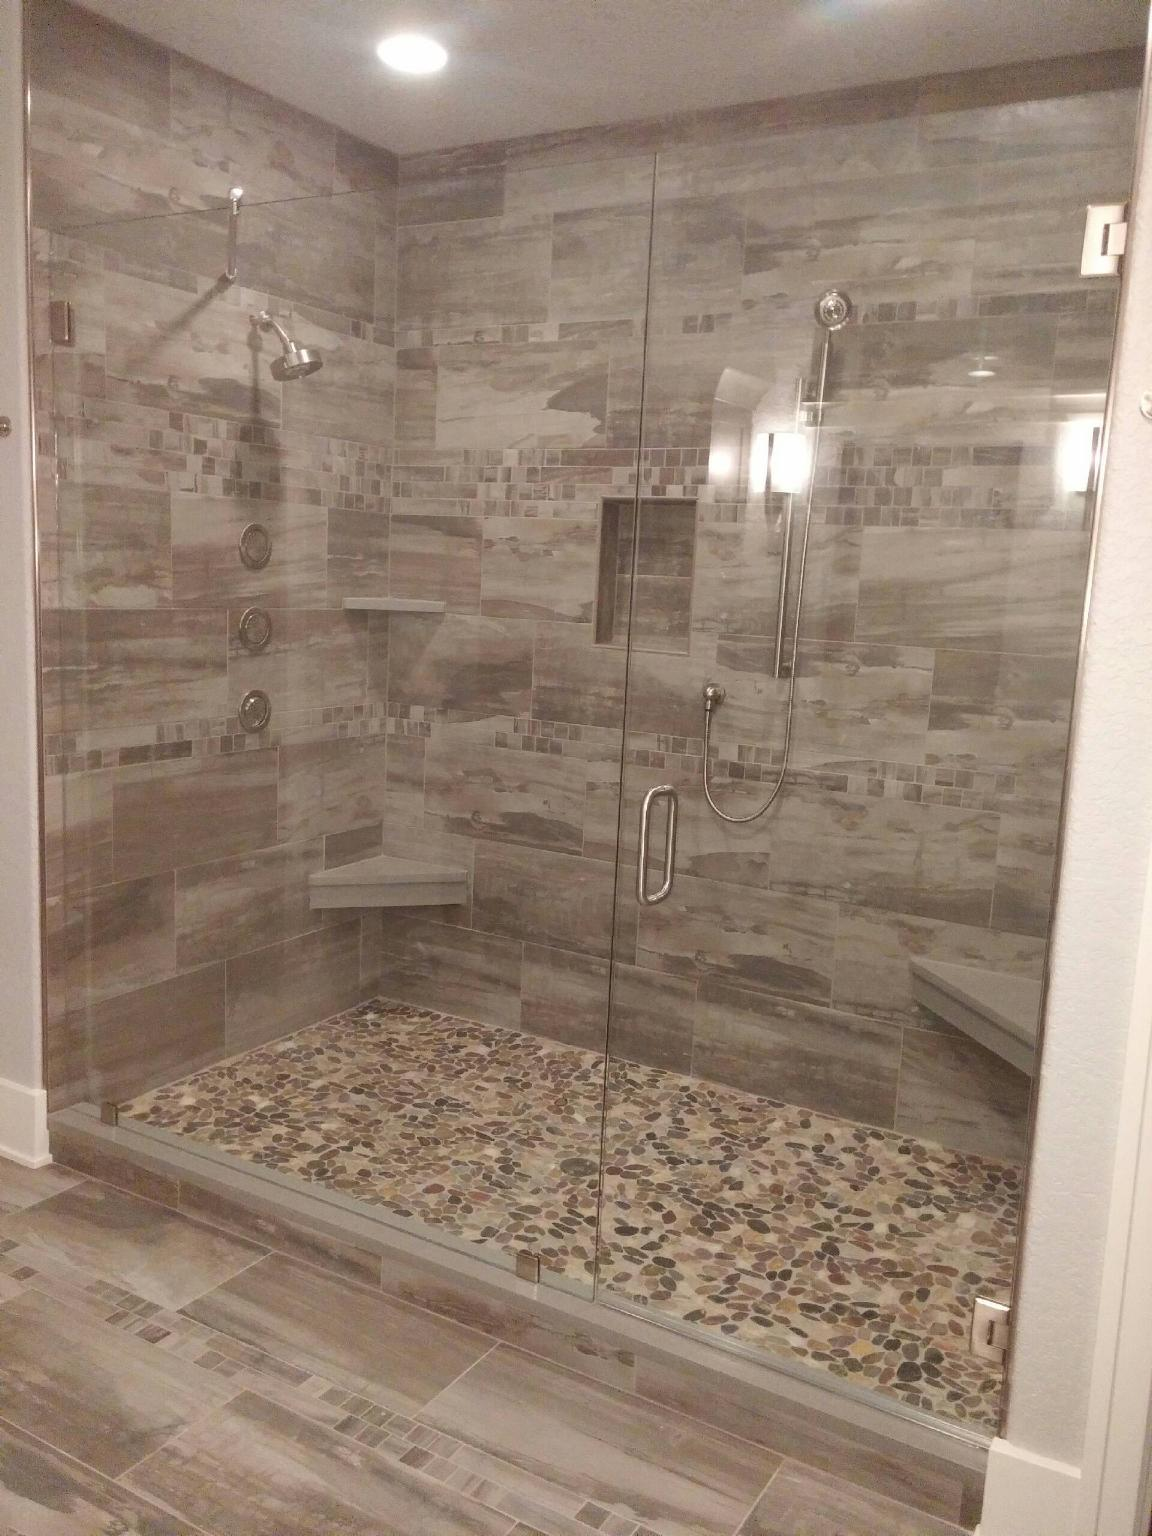 Shower Door Repair Altoona Sassman Glass And Mirror - Bathroom glass door repair